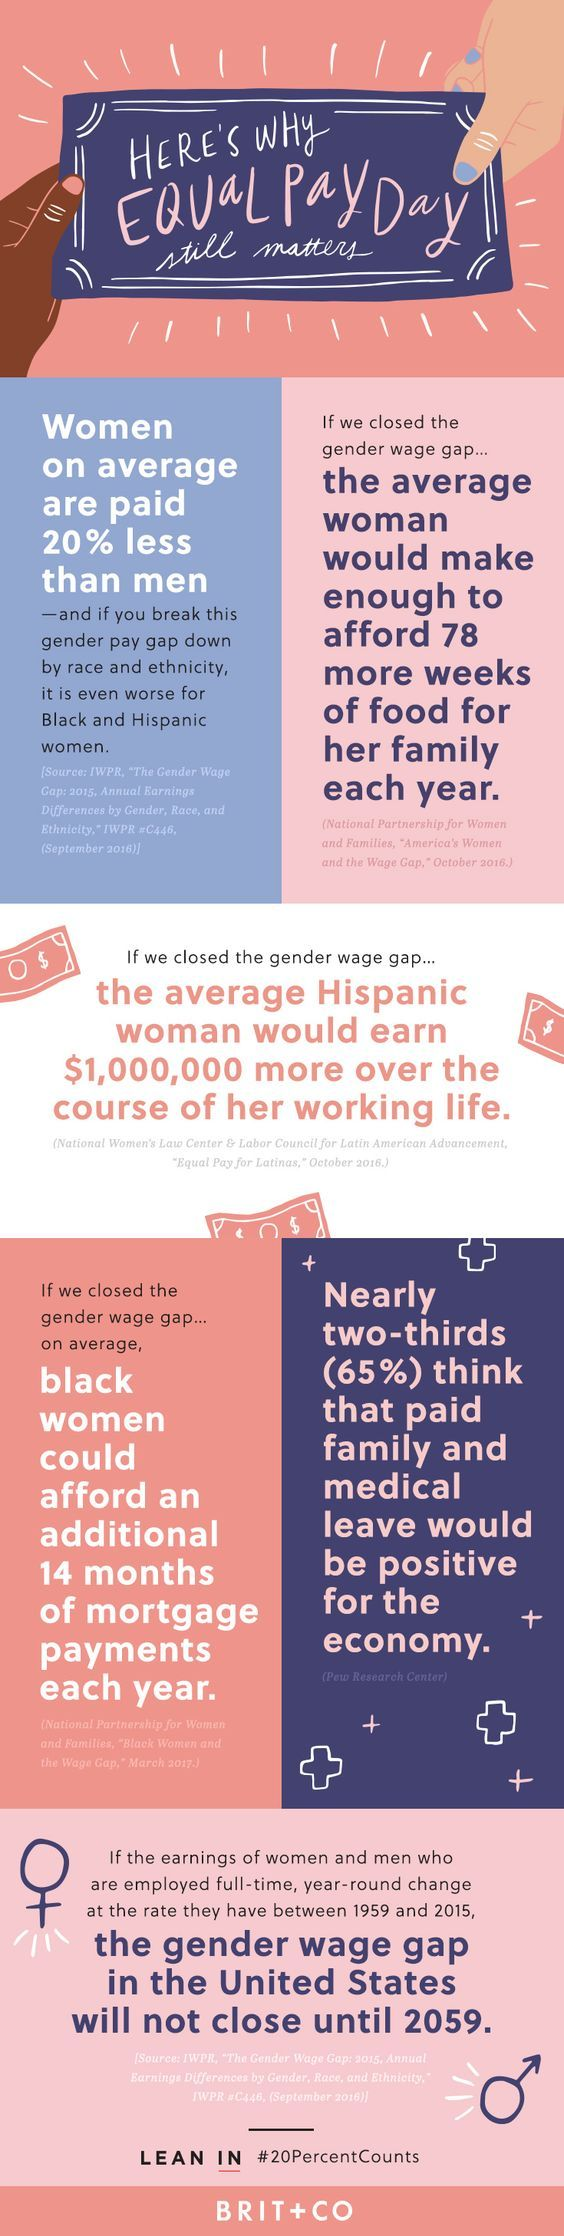 Save this to see why Equal Pay